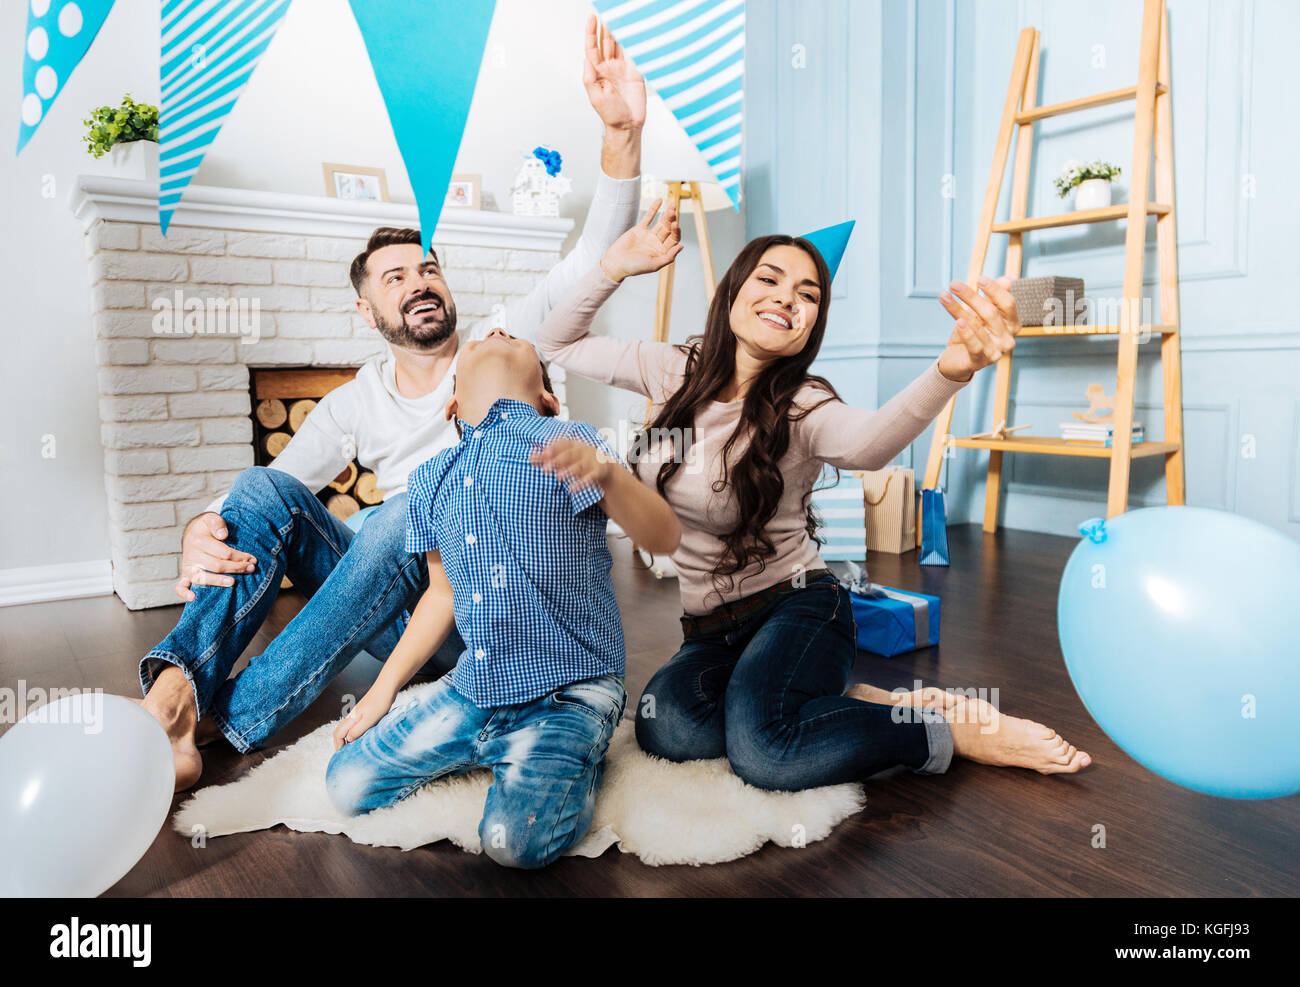 Cheerful family playing with balloons in the living room Stock Photo